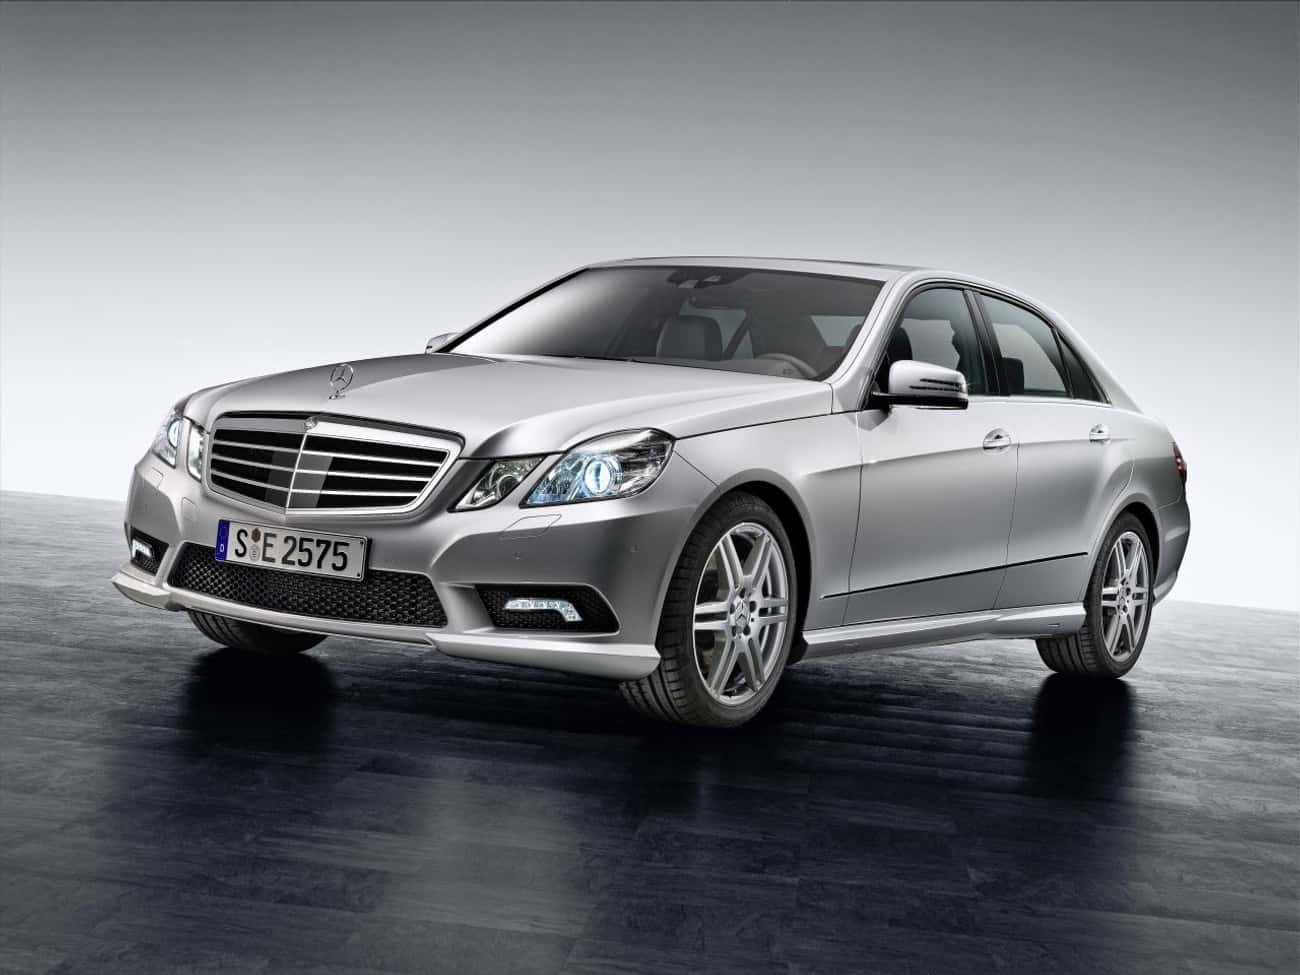 2011 Mercedes-Benz E-Class Sed is listed (or ranked) 1 on the list The Best Mercedes-Benz E-Classes of All Time